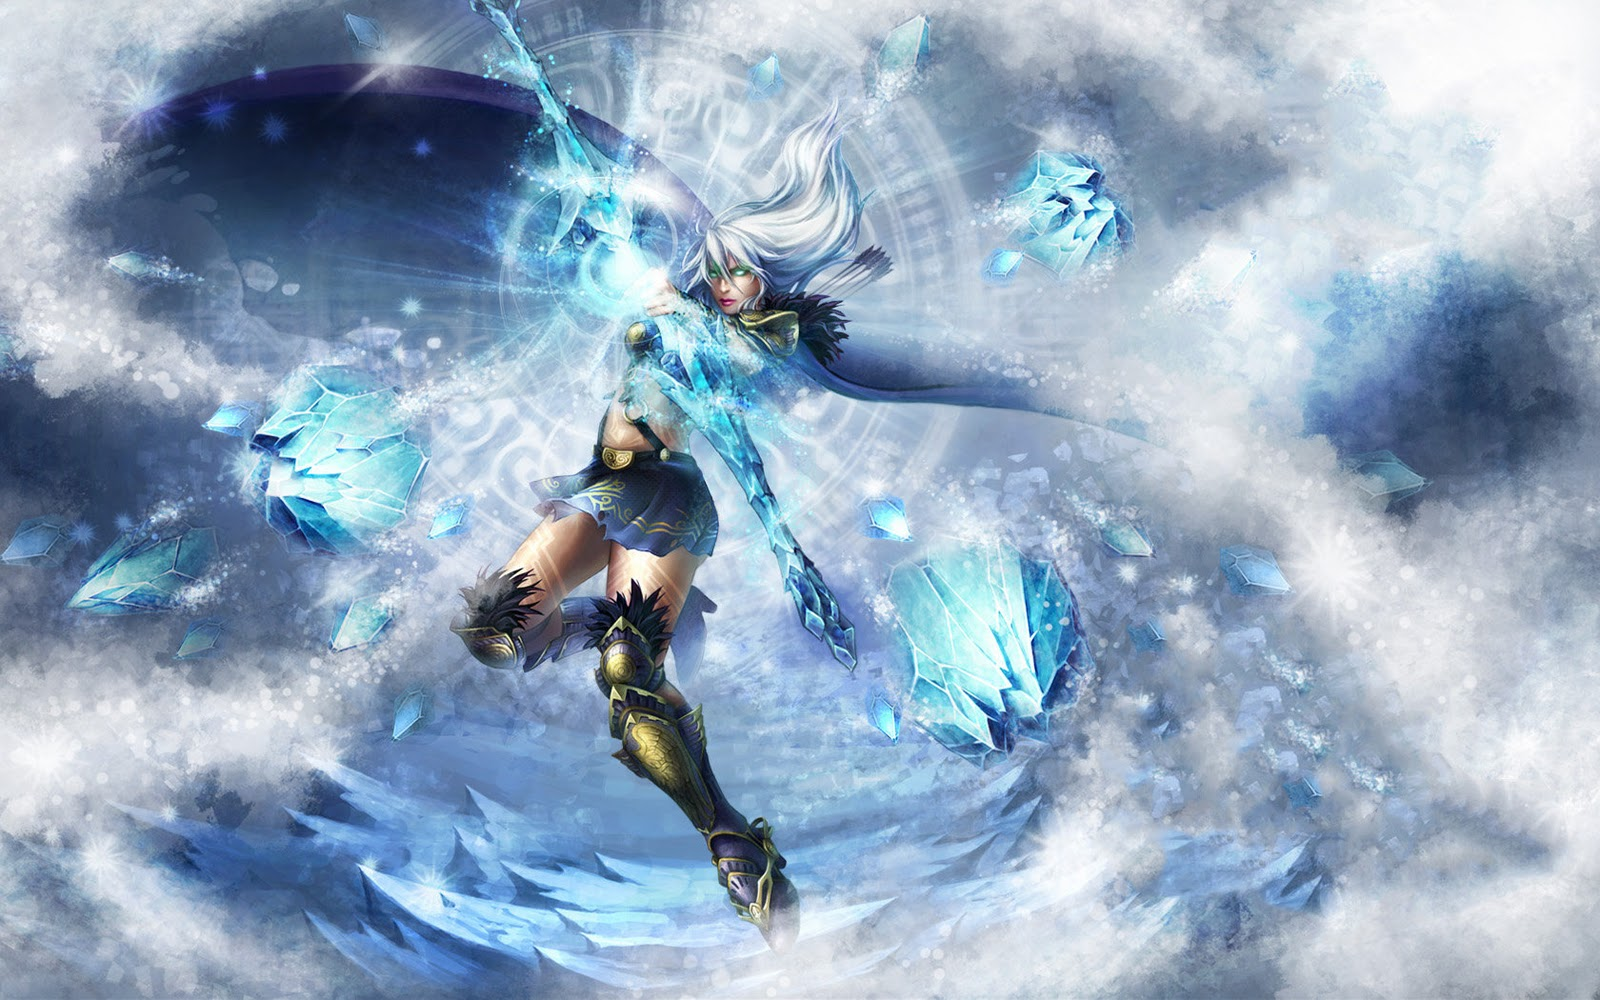 http://2.bp.blogspot.com/-PdJbjI7Y8eE/TrBelWsk0nI/AAAAAAAAAC0/GSWCsf_8P8w/s1600/6771_league_of_legends_hd_wallpapers.jpg